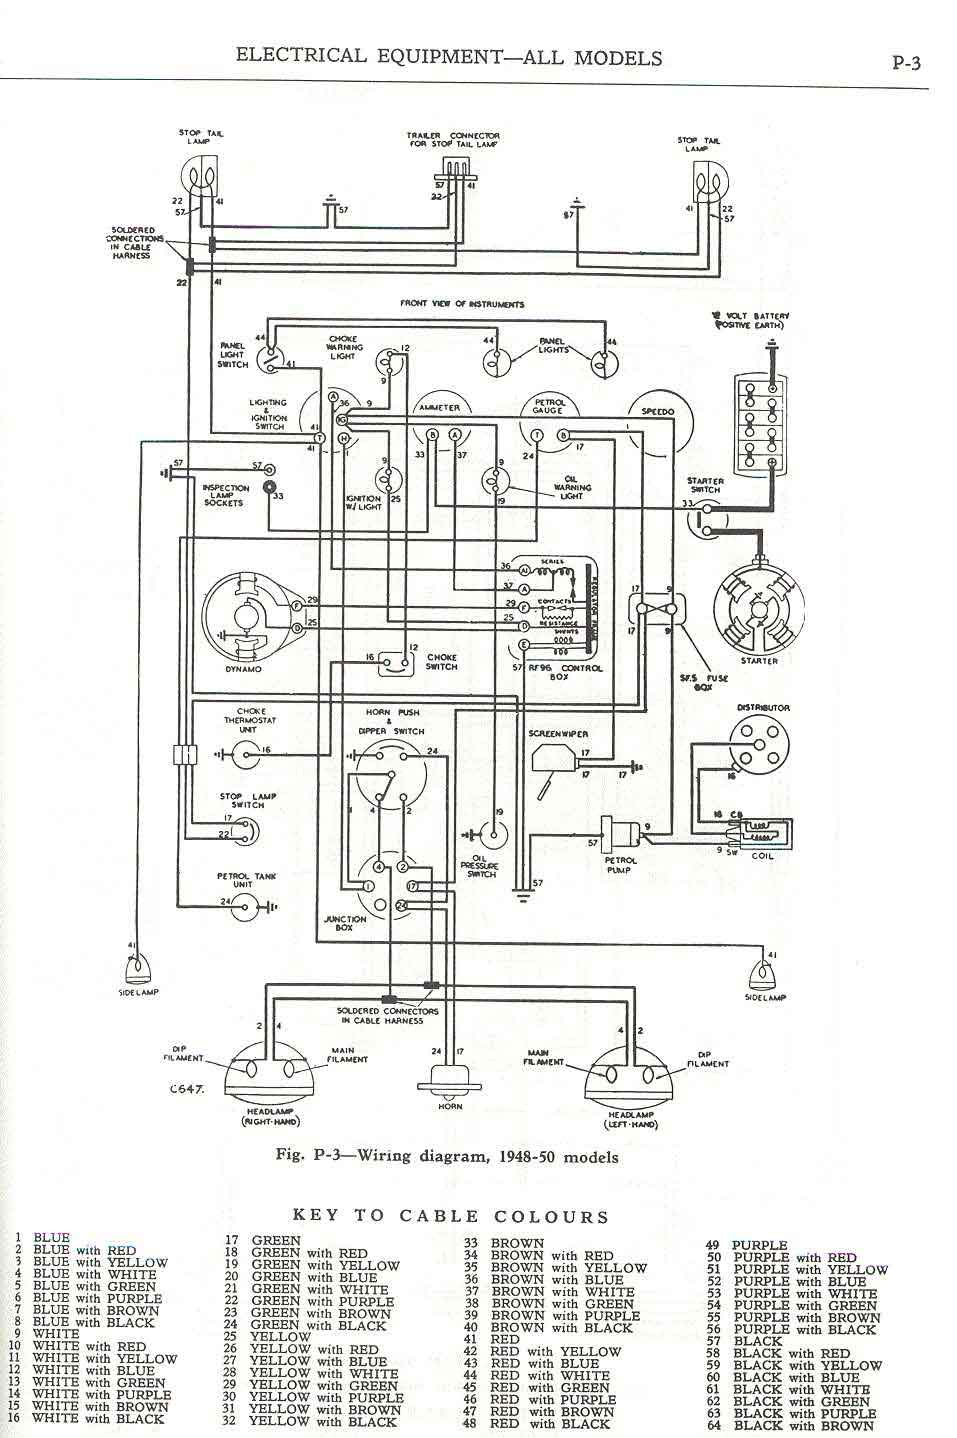 P3 land rover faq repair & maintenance series electrical rover 45 wiring diagram at n-0.co